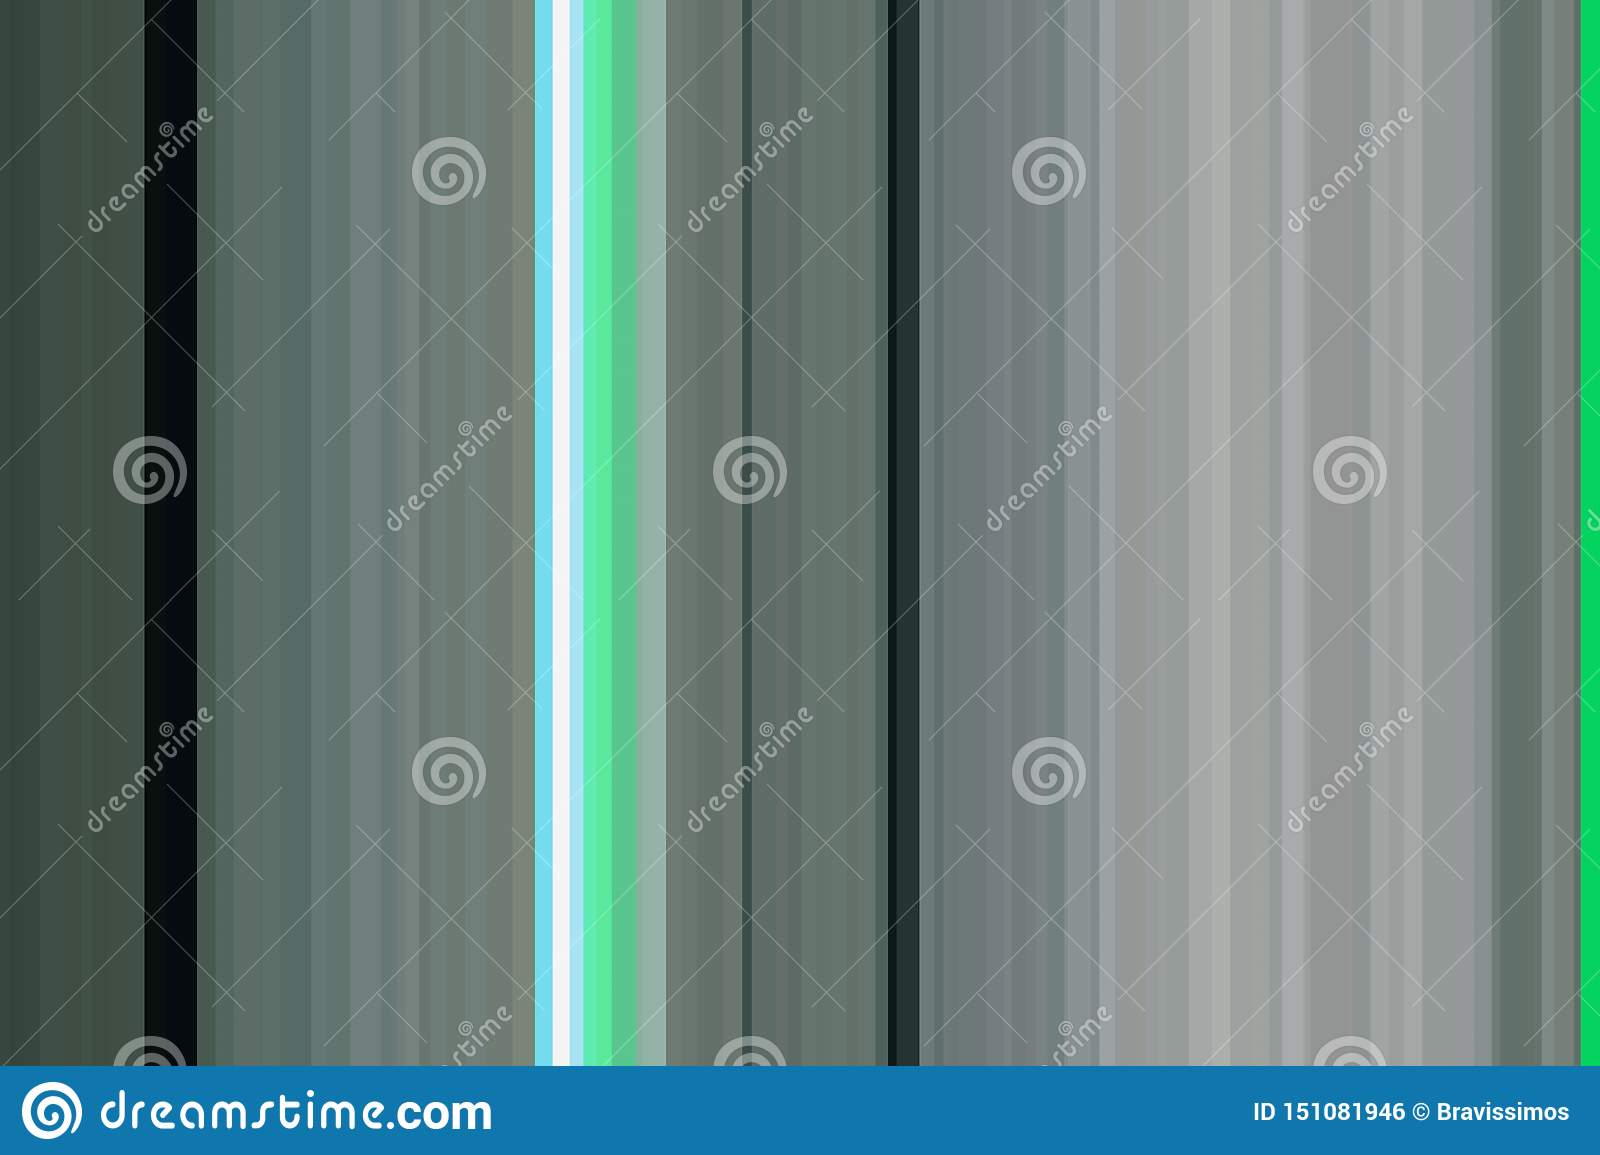 Background Olive Abstract Backdrop Graphic Wallpaper Stock